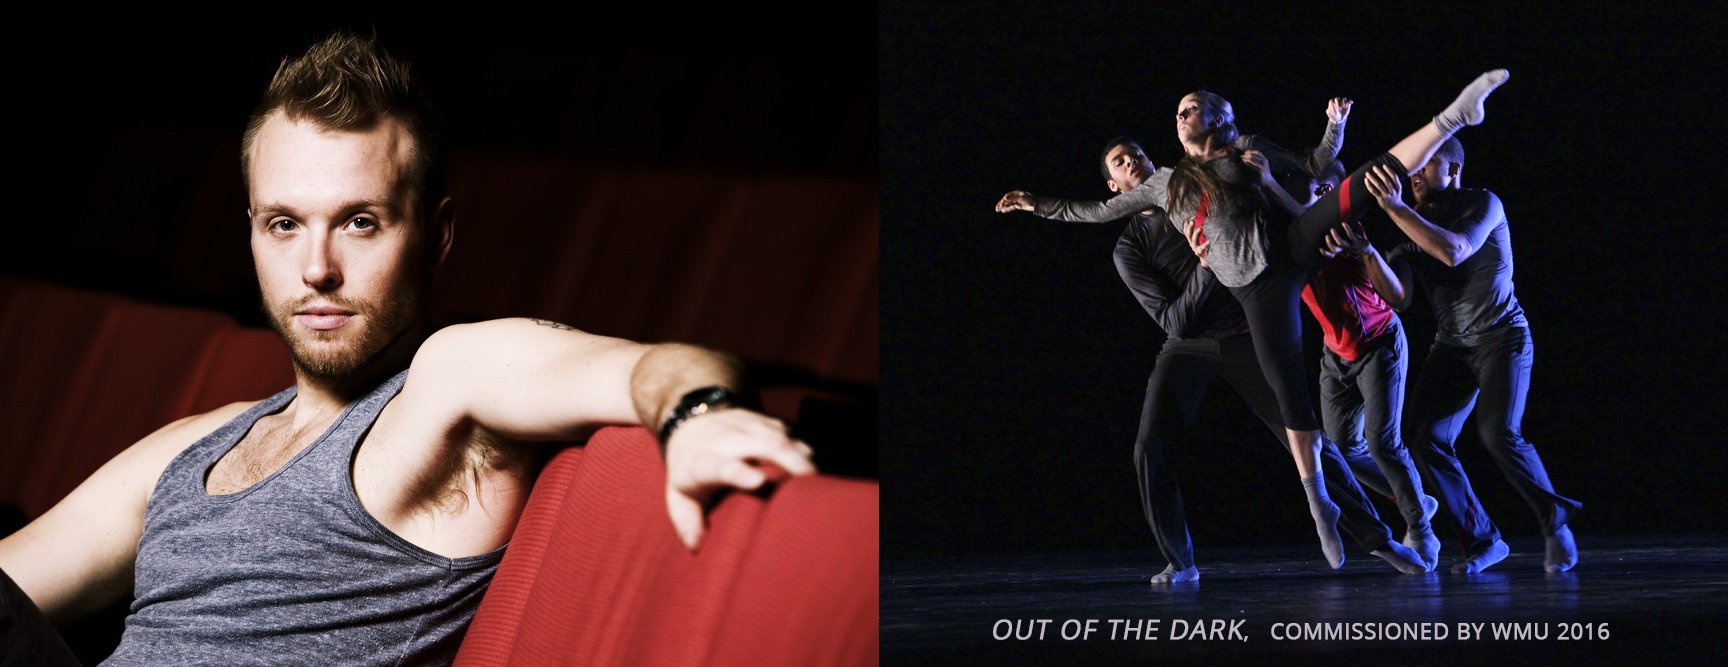 Left: James Gregg; Right: Performance of Gregg's Out of the Dark